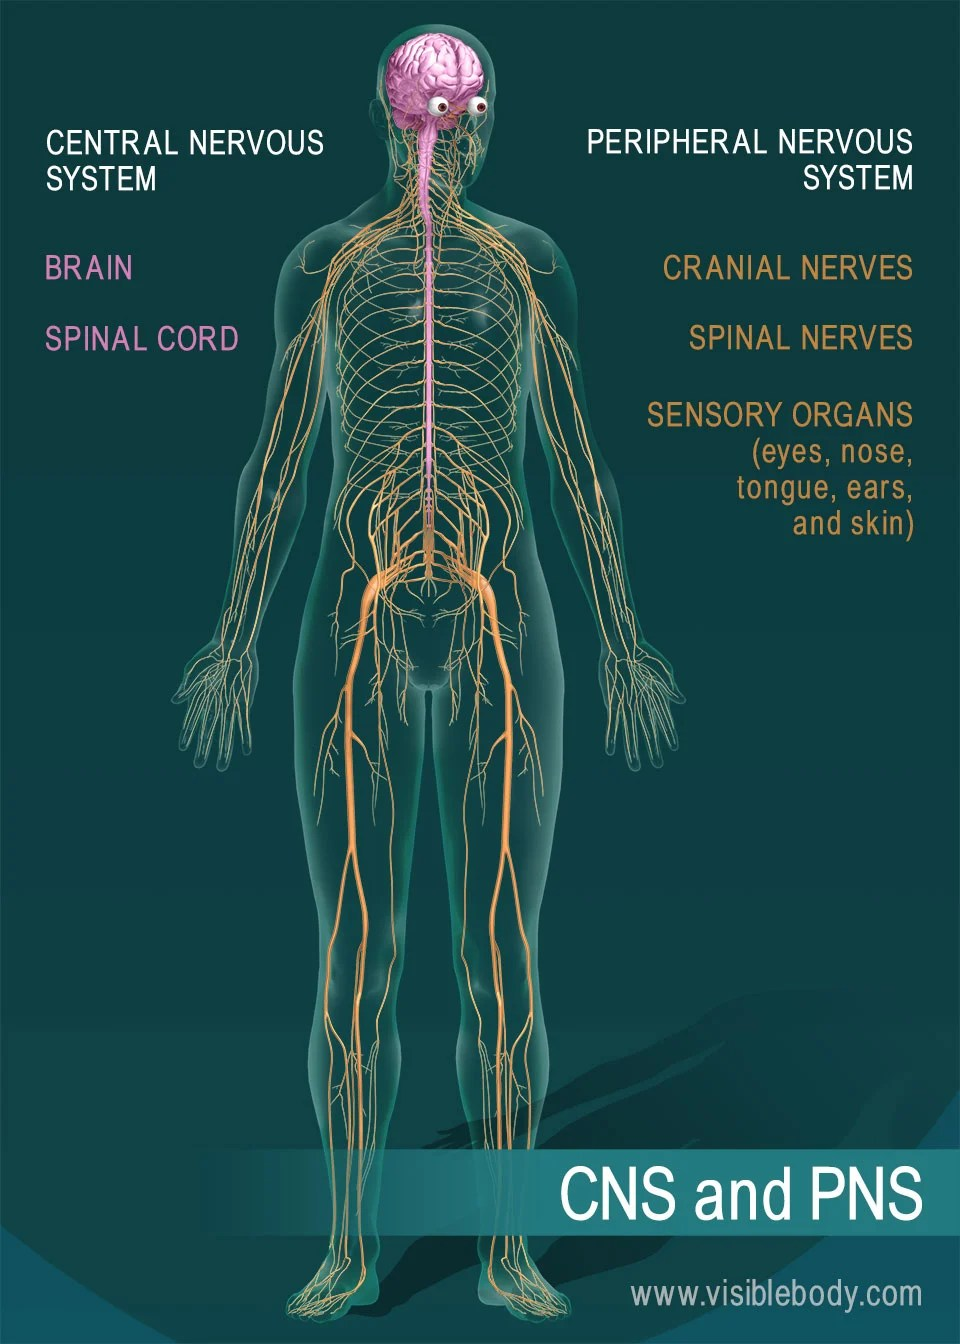 medium resolution of the brain and spinal cord are the central nervous system nerves and sensory organs make up the peripheral nervous system